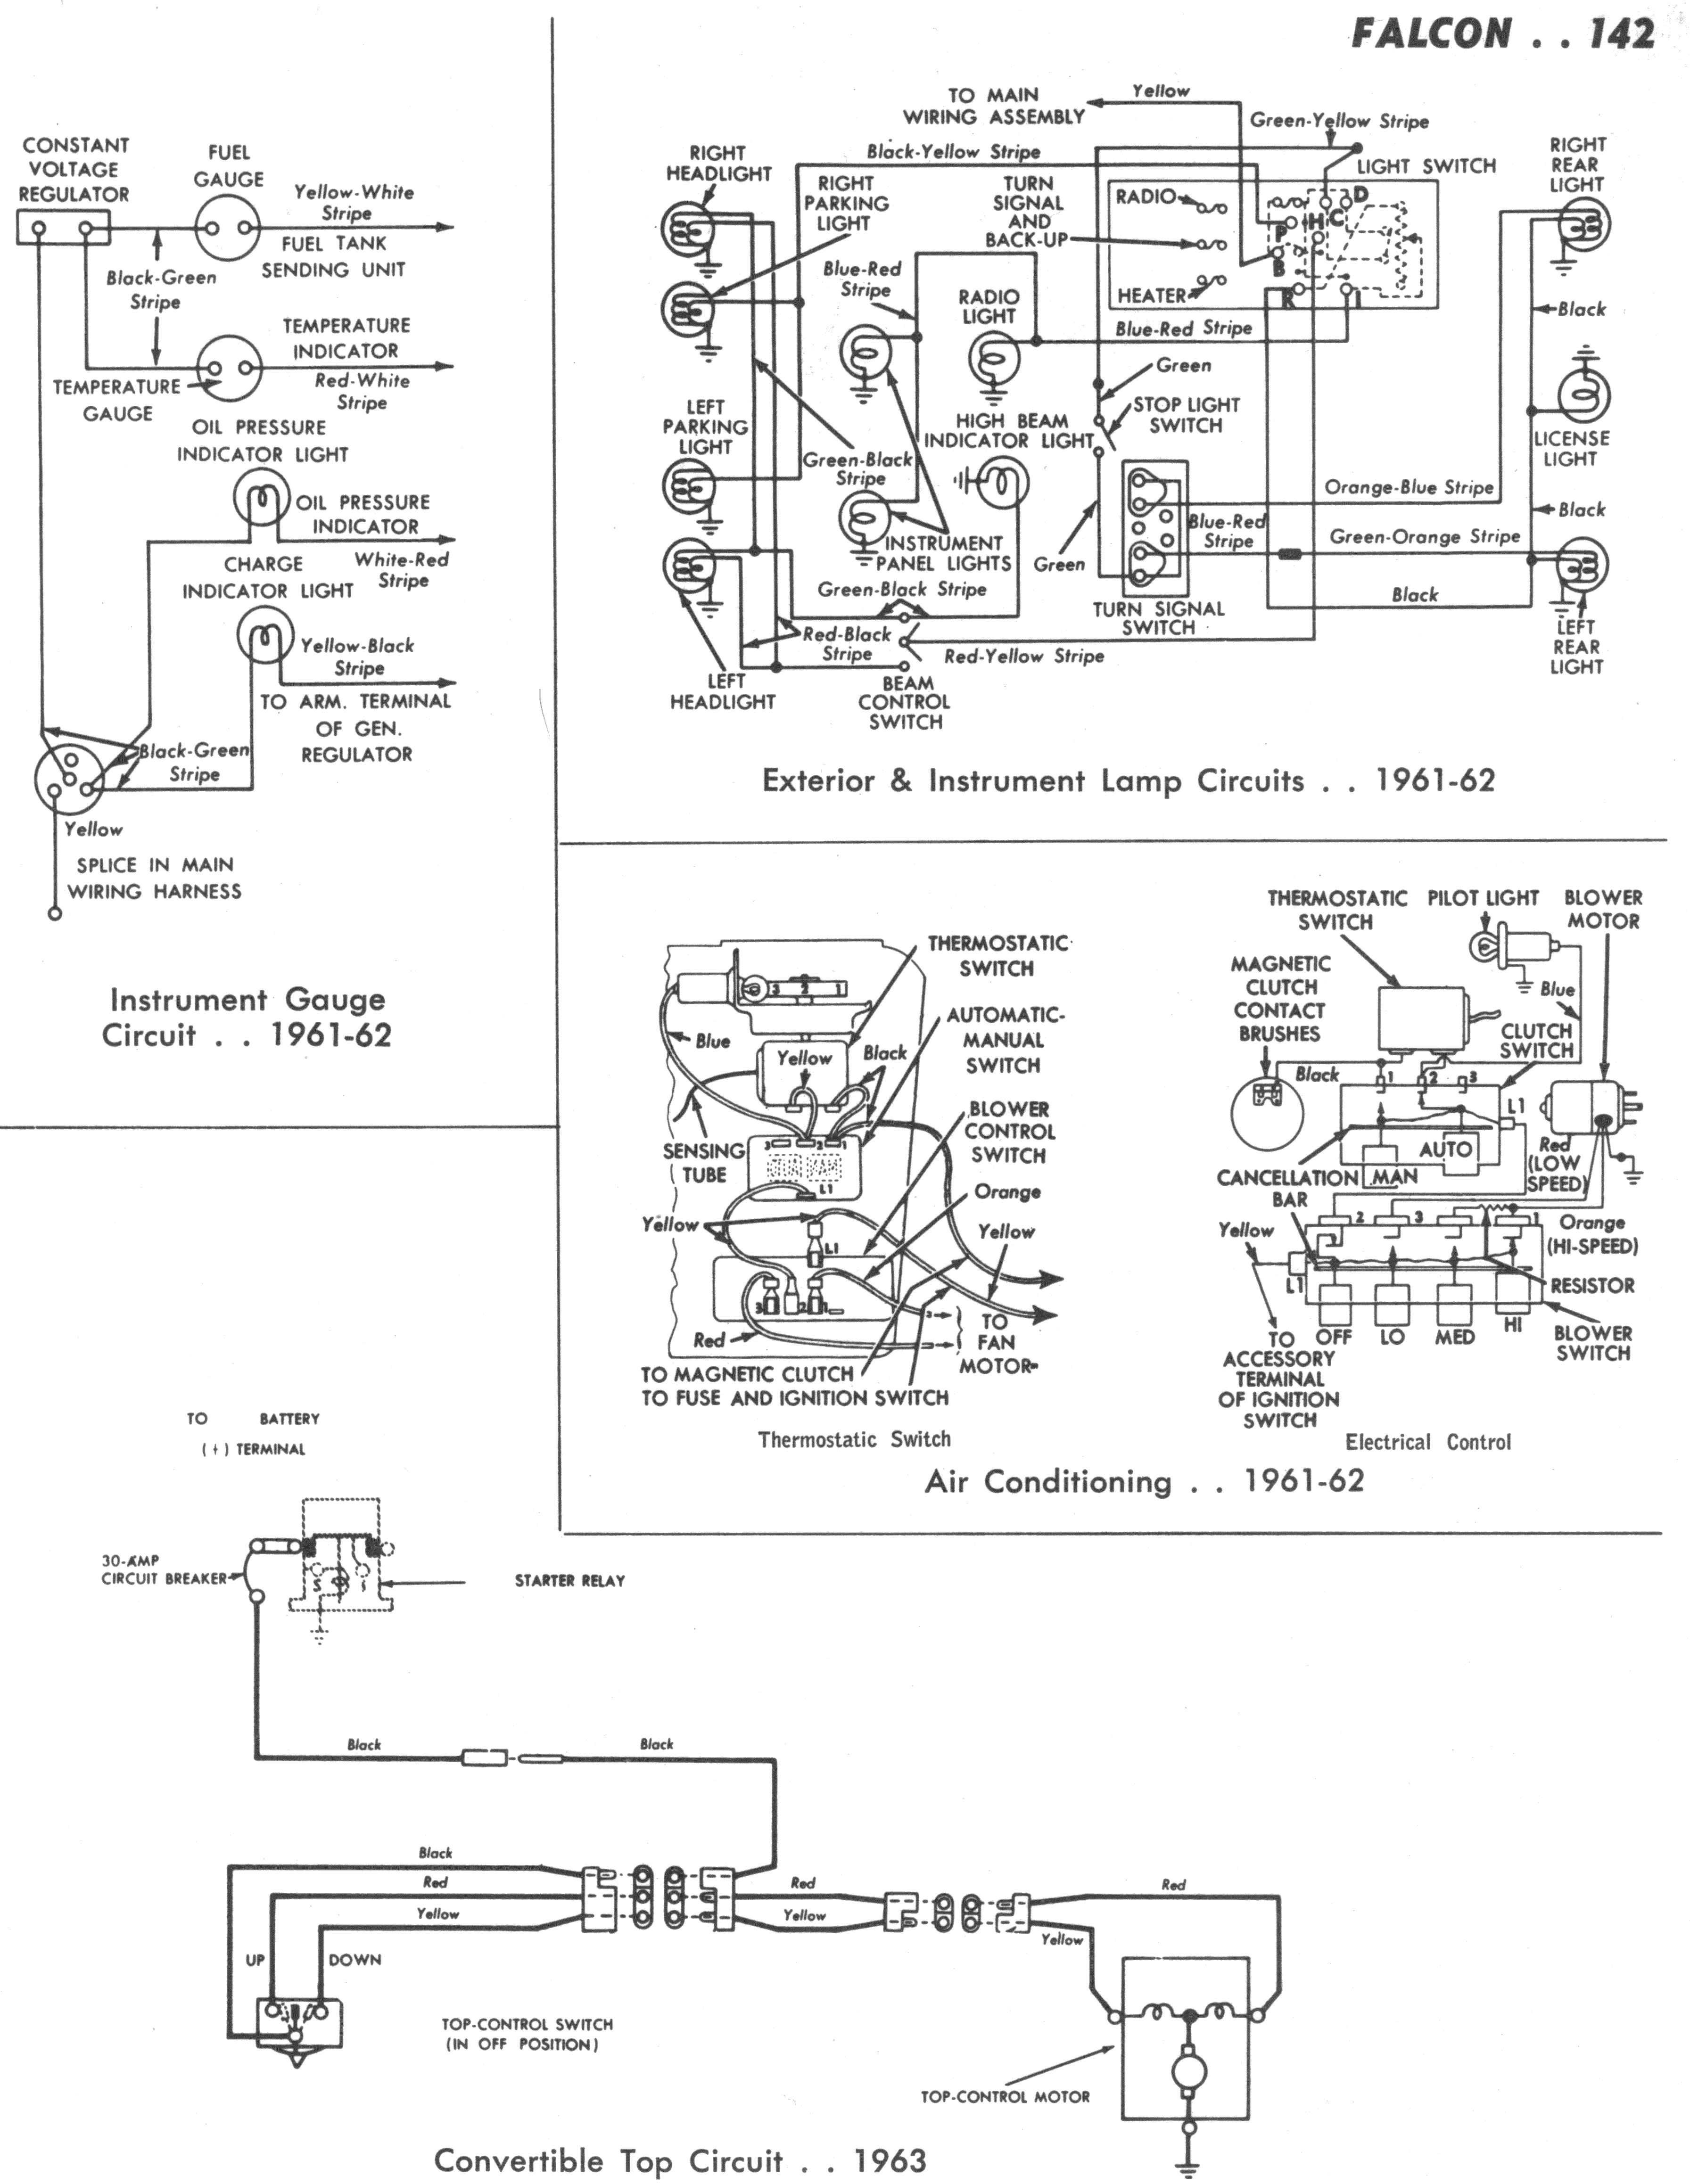 68 corvair wiring diagram 68 camaro turn signal wiring diagram | wiring library 1965 corvair wiring diagram #12